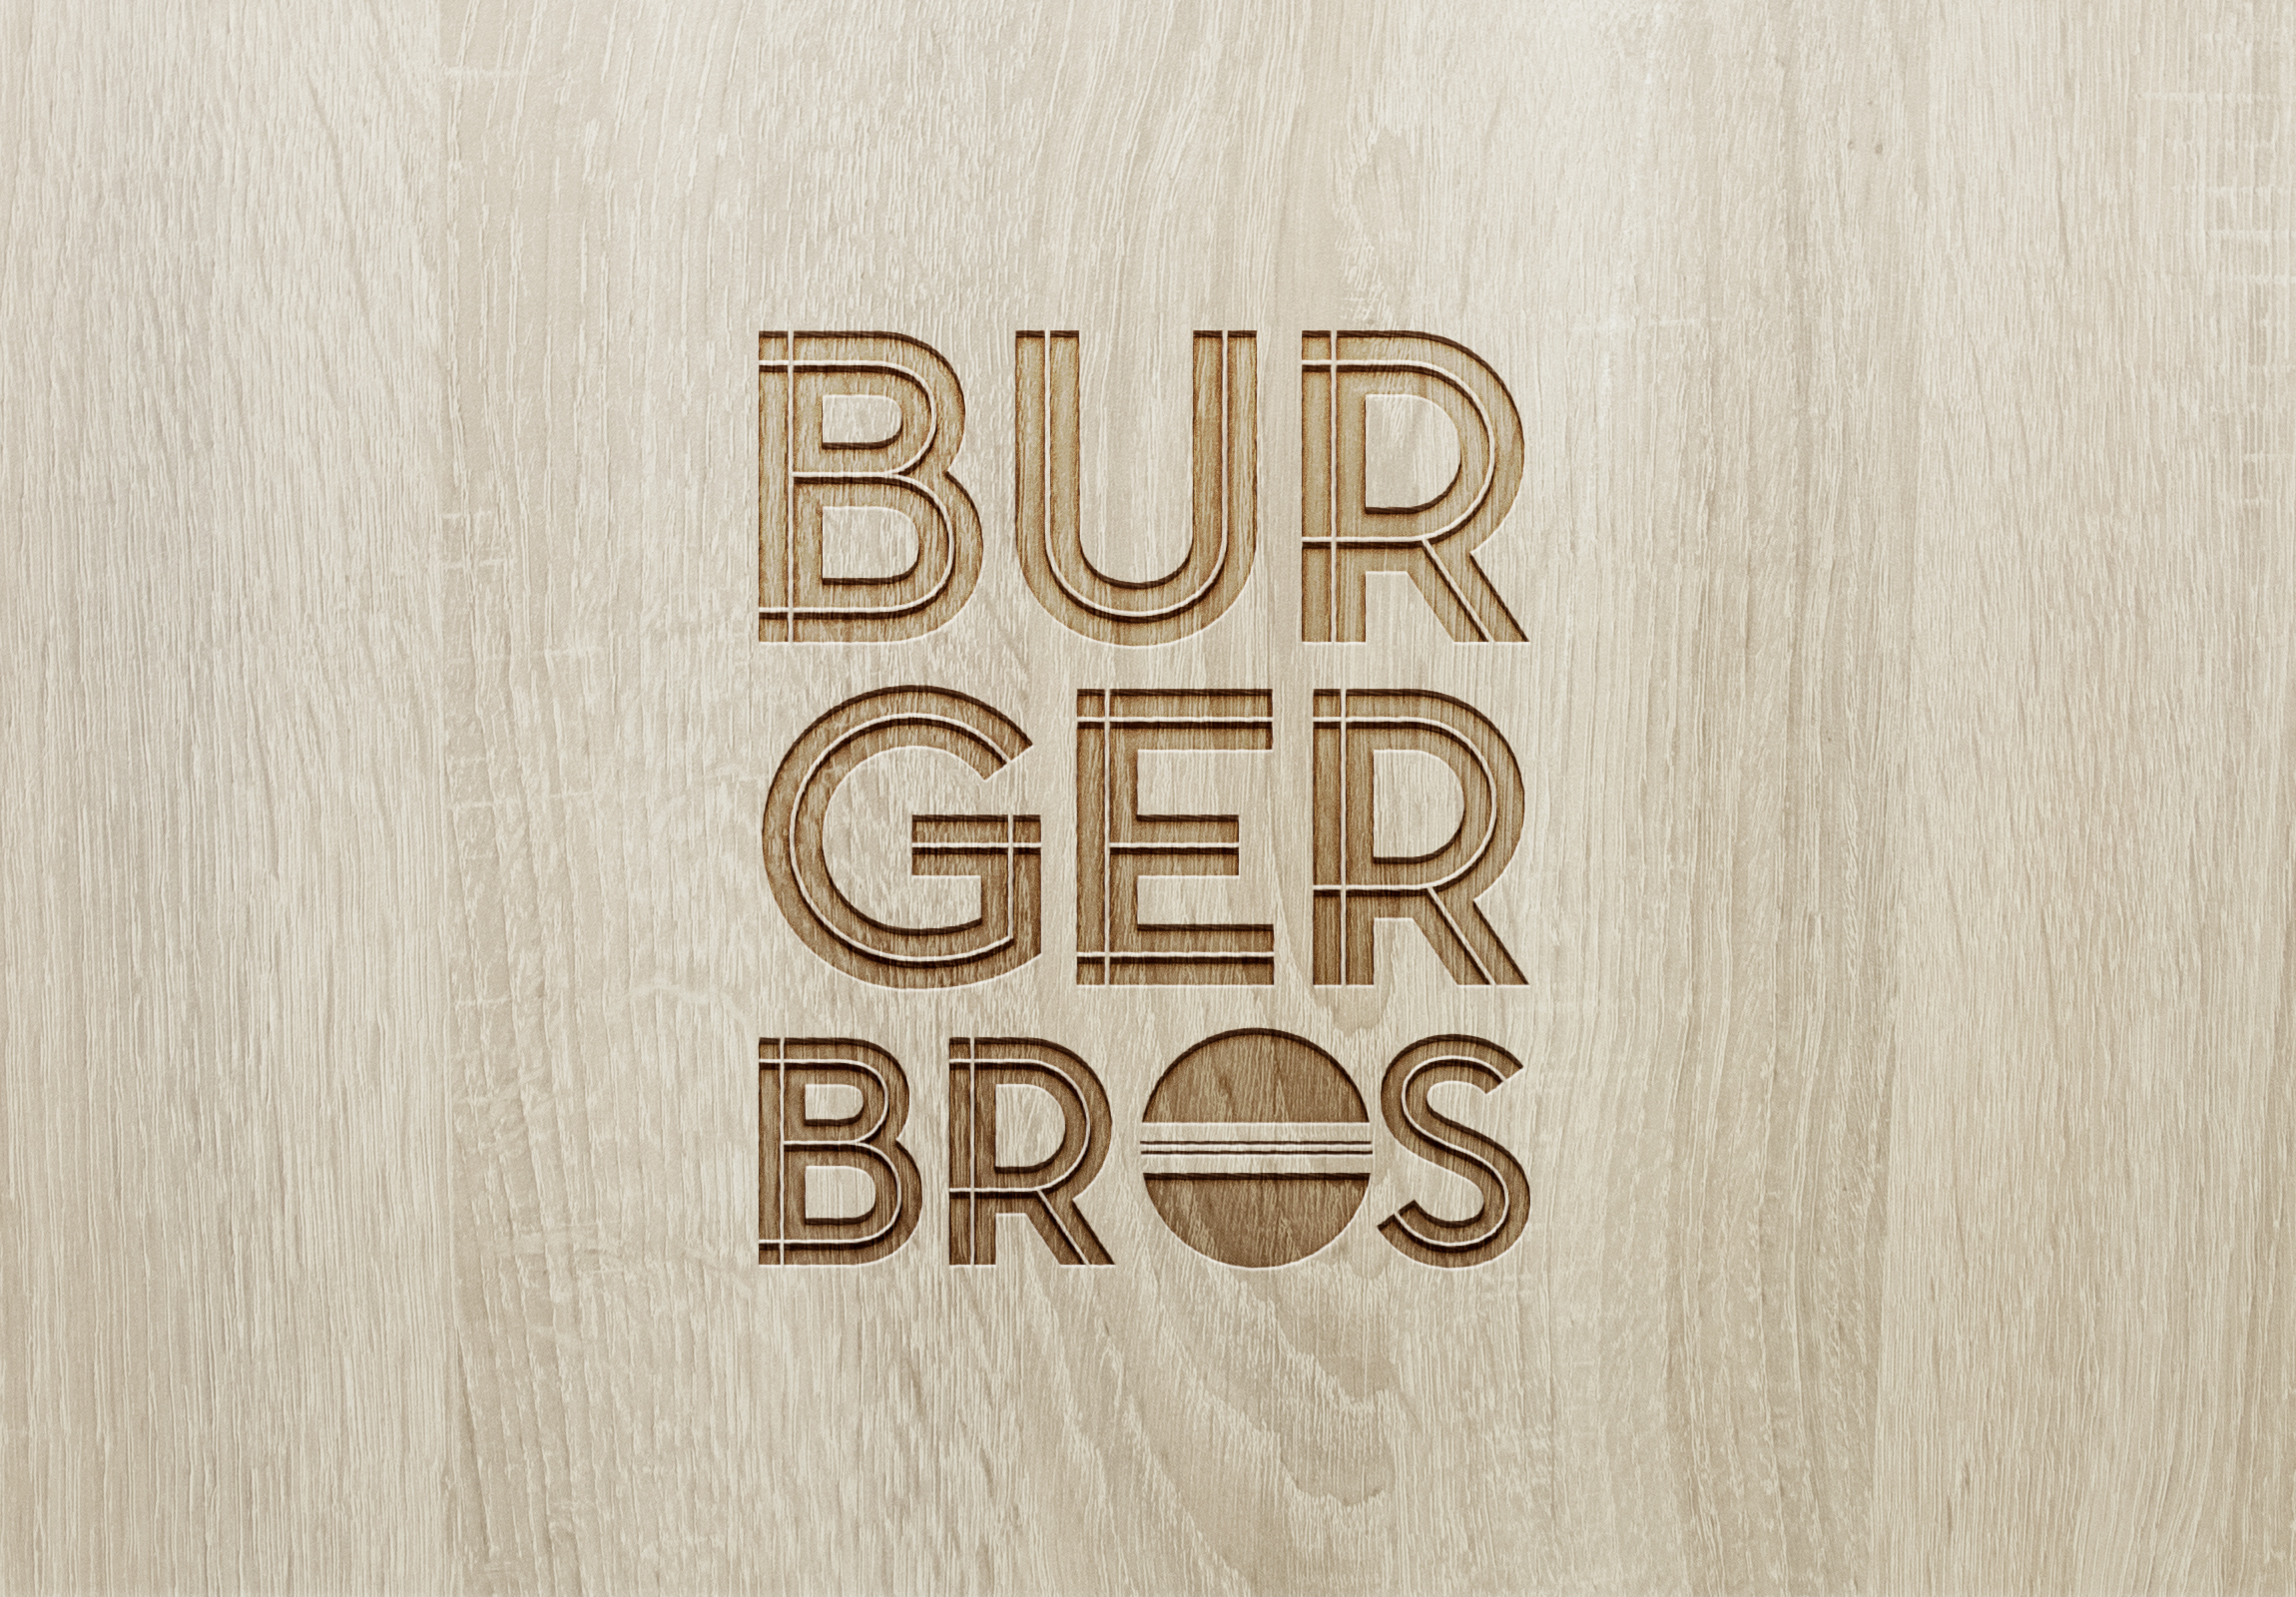 2017-09-03_BurgerBrothers_Ideation_LogoType_WoodEngravedMockup.png